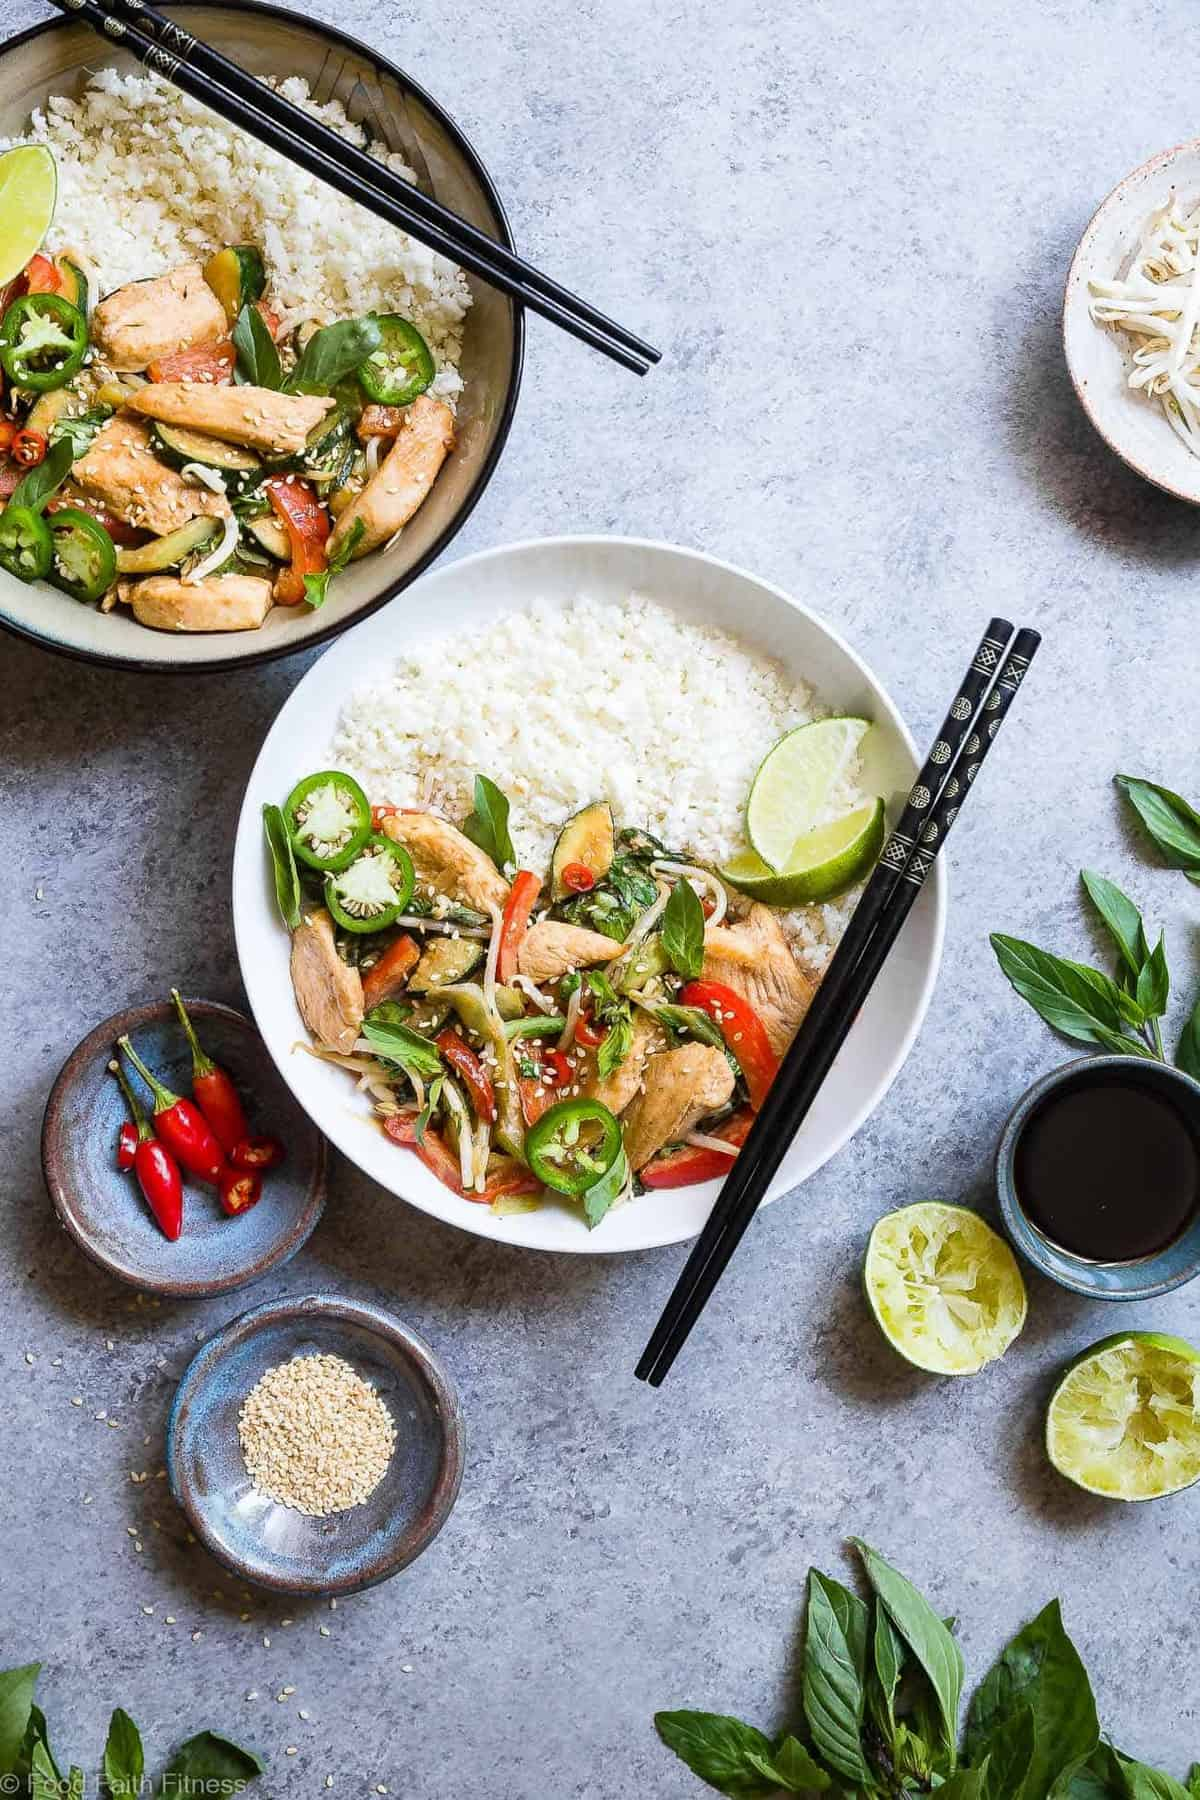 Spicy Thai Basil Chicken Stir Fry - A 20 minute, healthy, gluten free dinner that is paleo friendly, lower carb and only 300 calories! It will be your new go to weeknight meal! | #Foodfaithfitness | #Glutenfree #Paleo #Lowcarb #Healthy #DairyFree